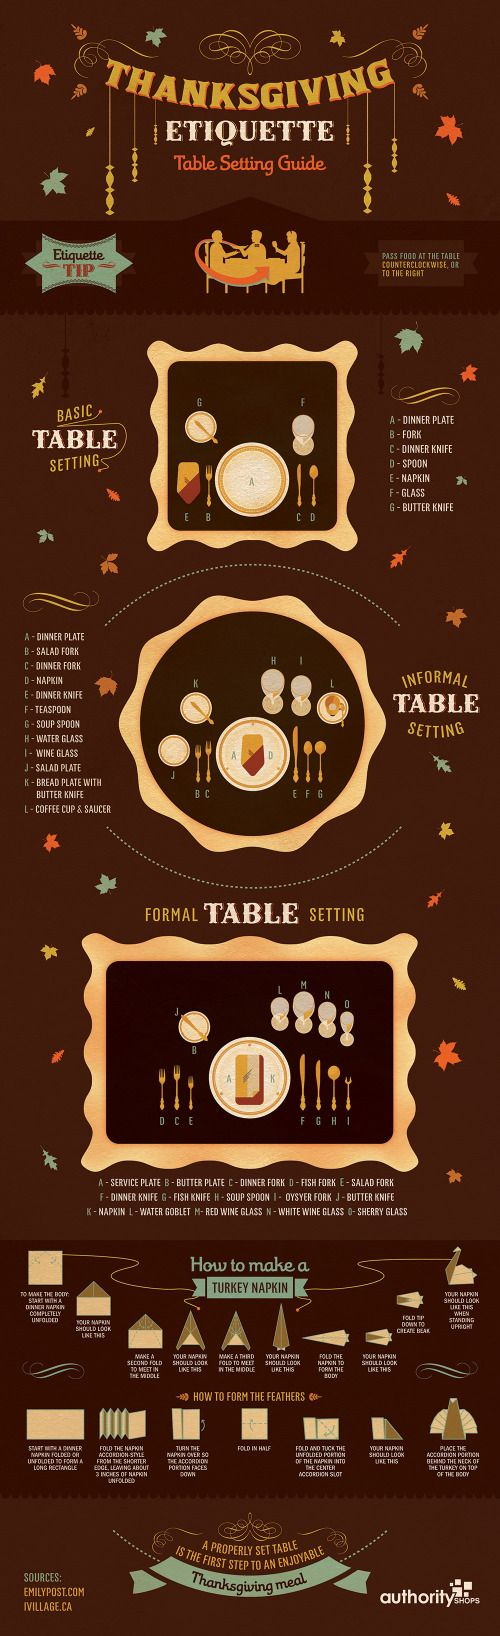 Proper table setting diagram diagram of a formal table setting - Thanksgiving Etiquette Table Setting Guide Infographic